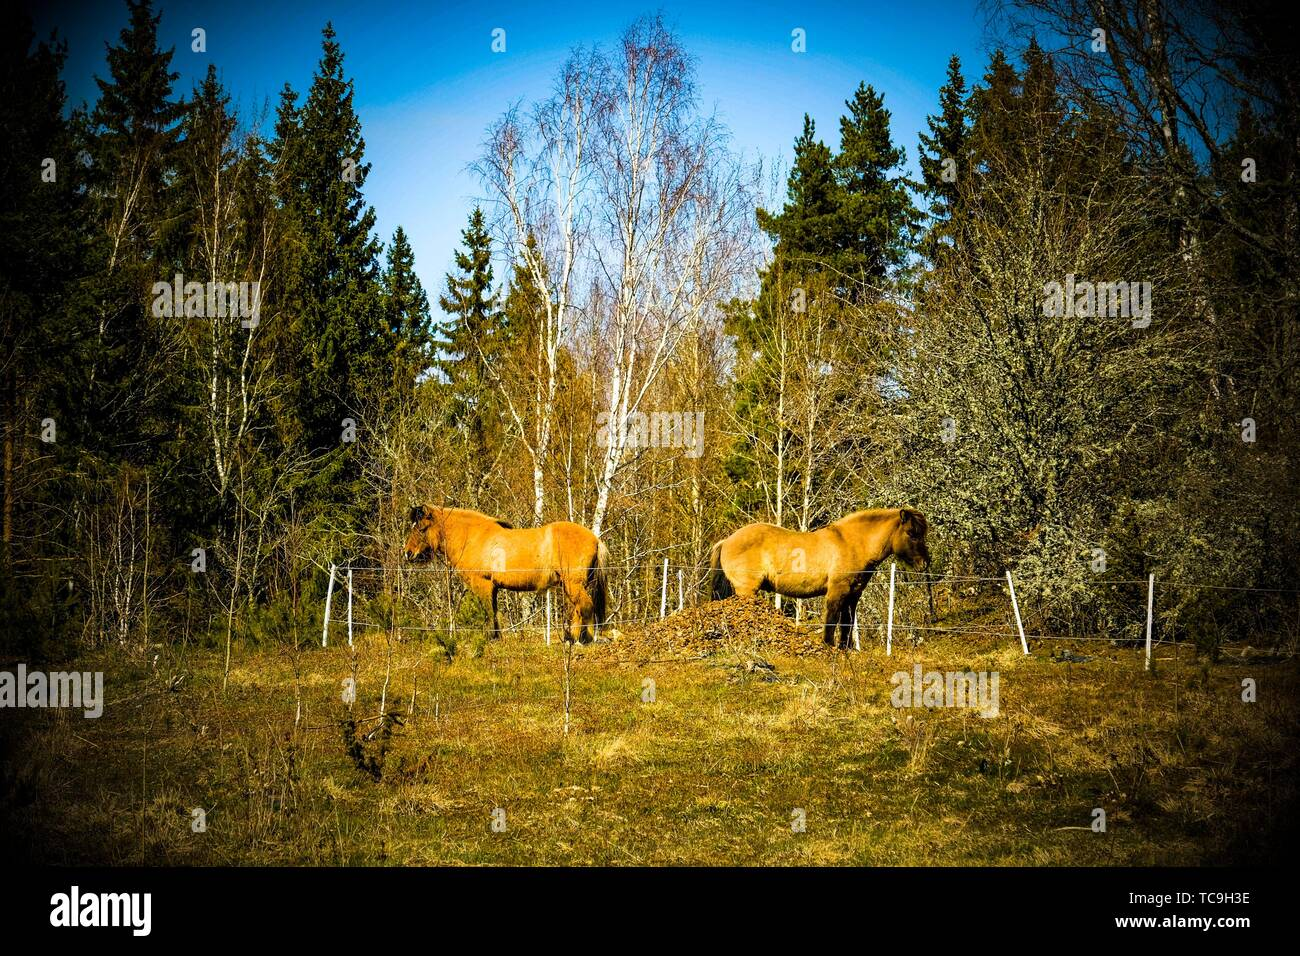 Horses in Sweden. - Stock Image